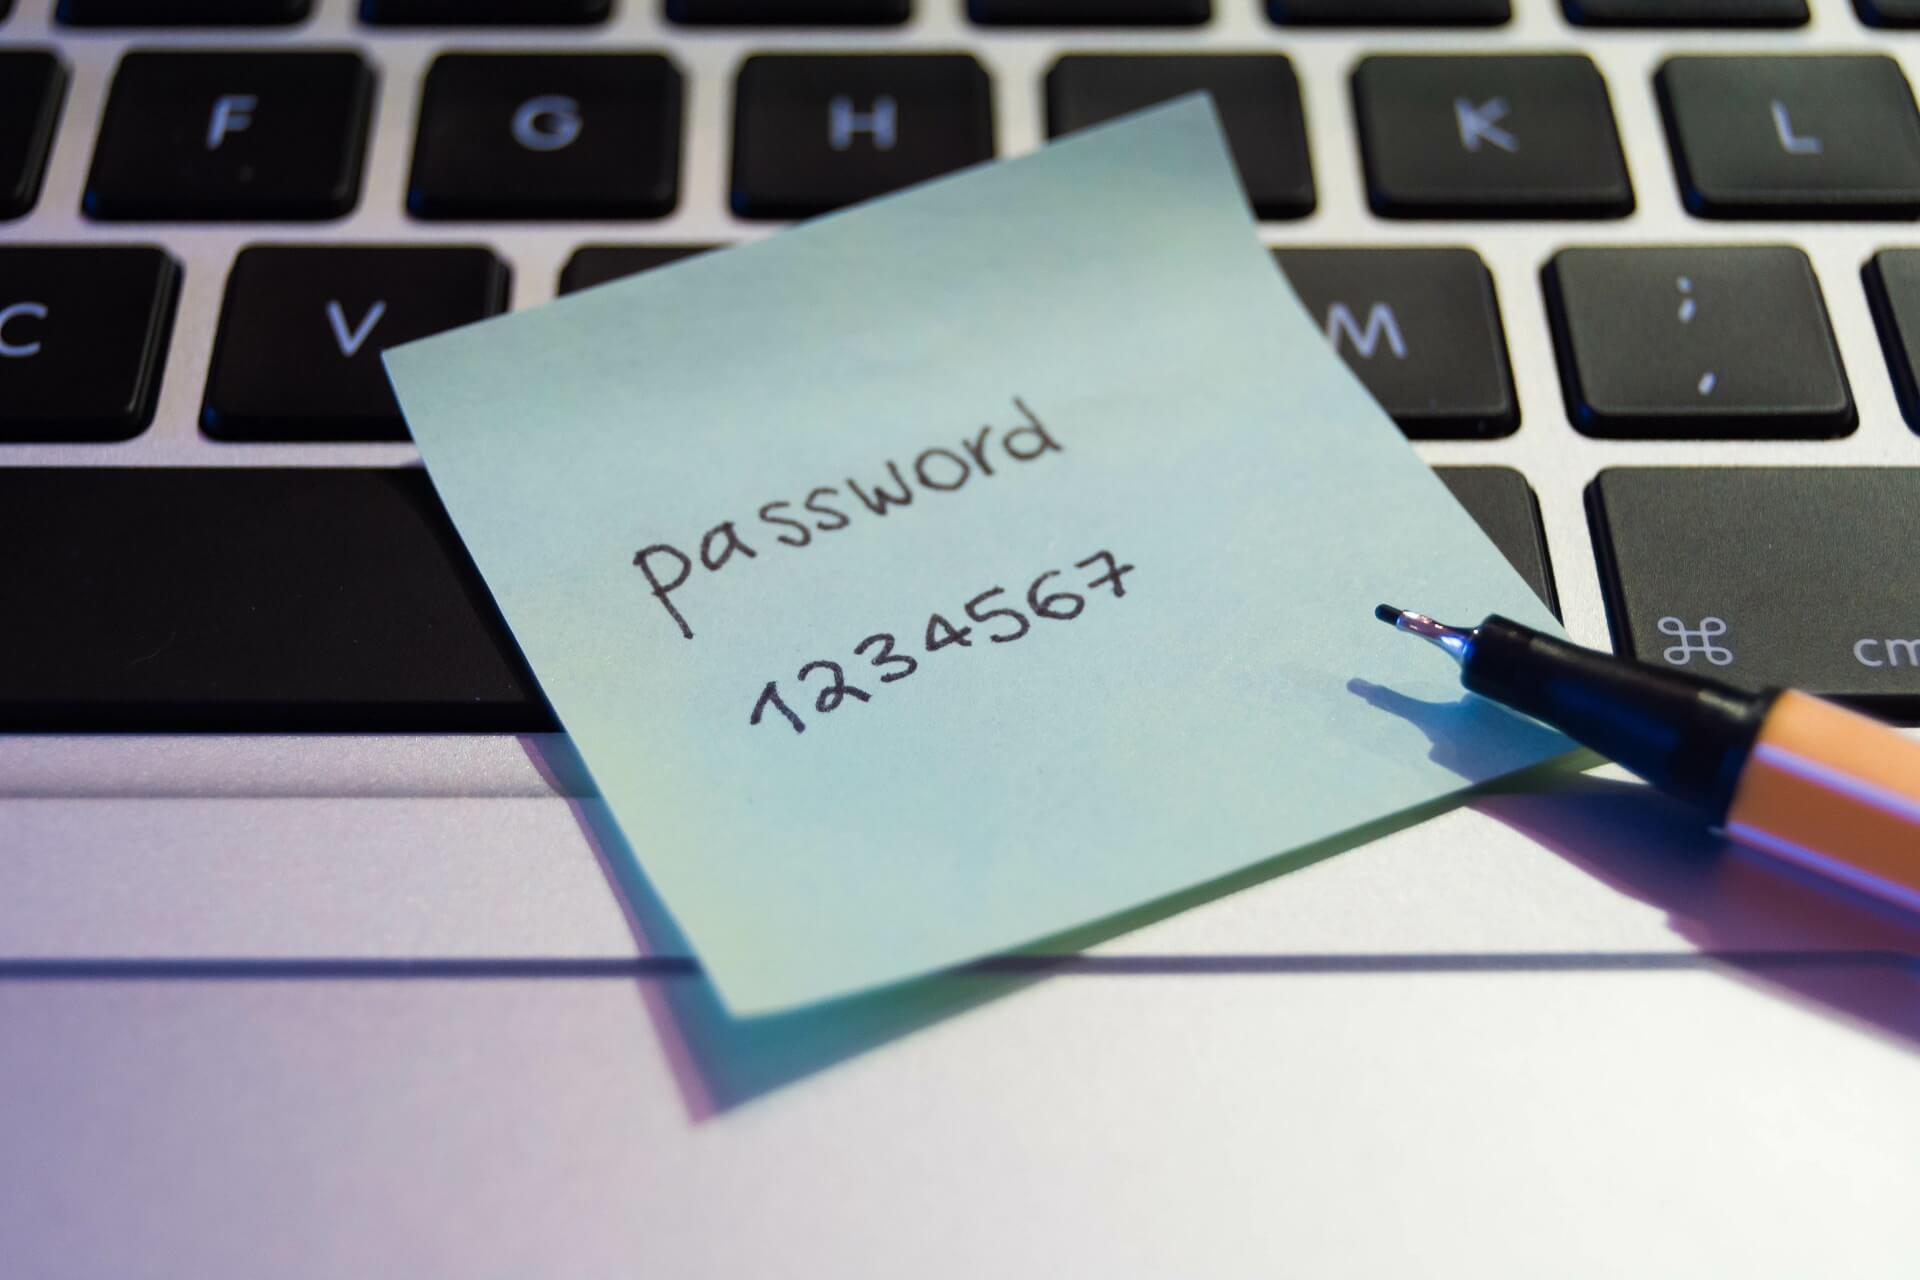 example of weak password